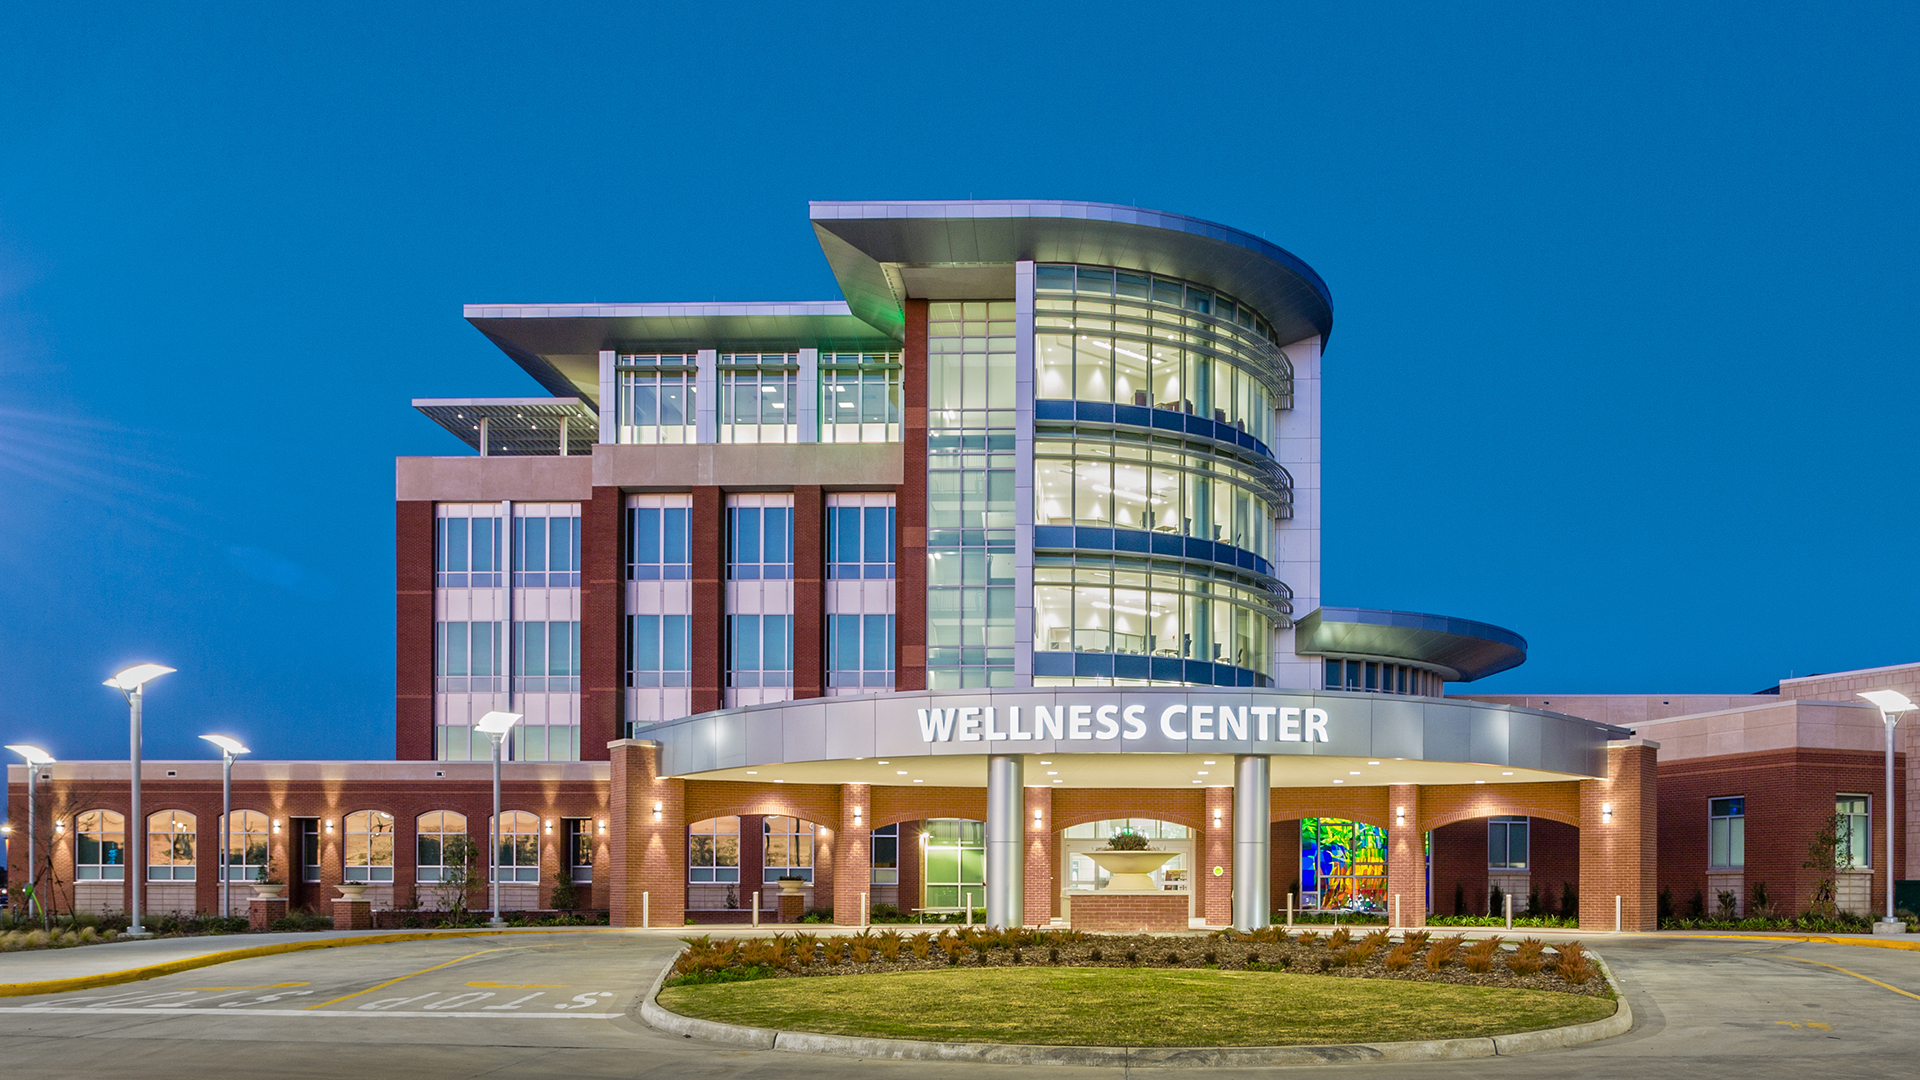 Thibodaux Regional Medical Center, Wellness Center